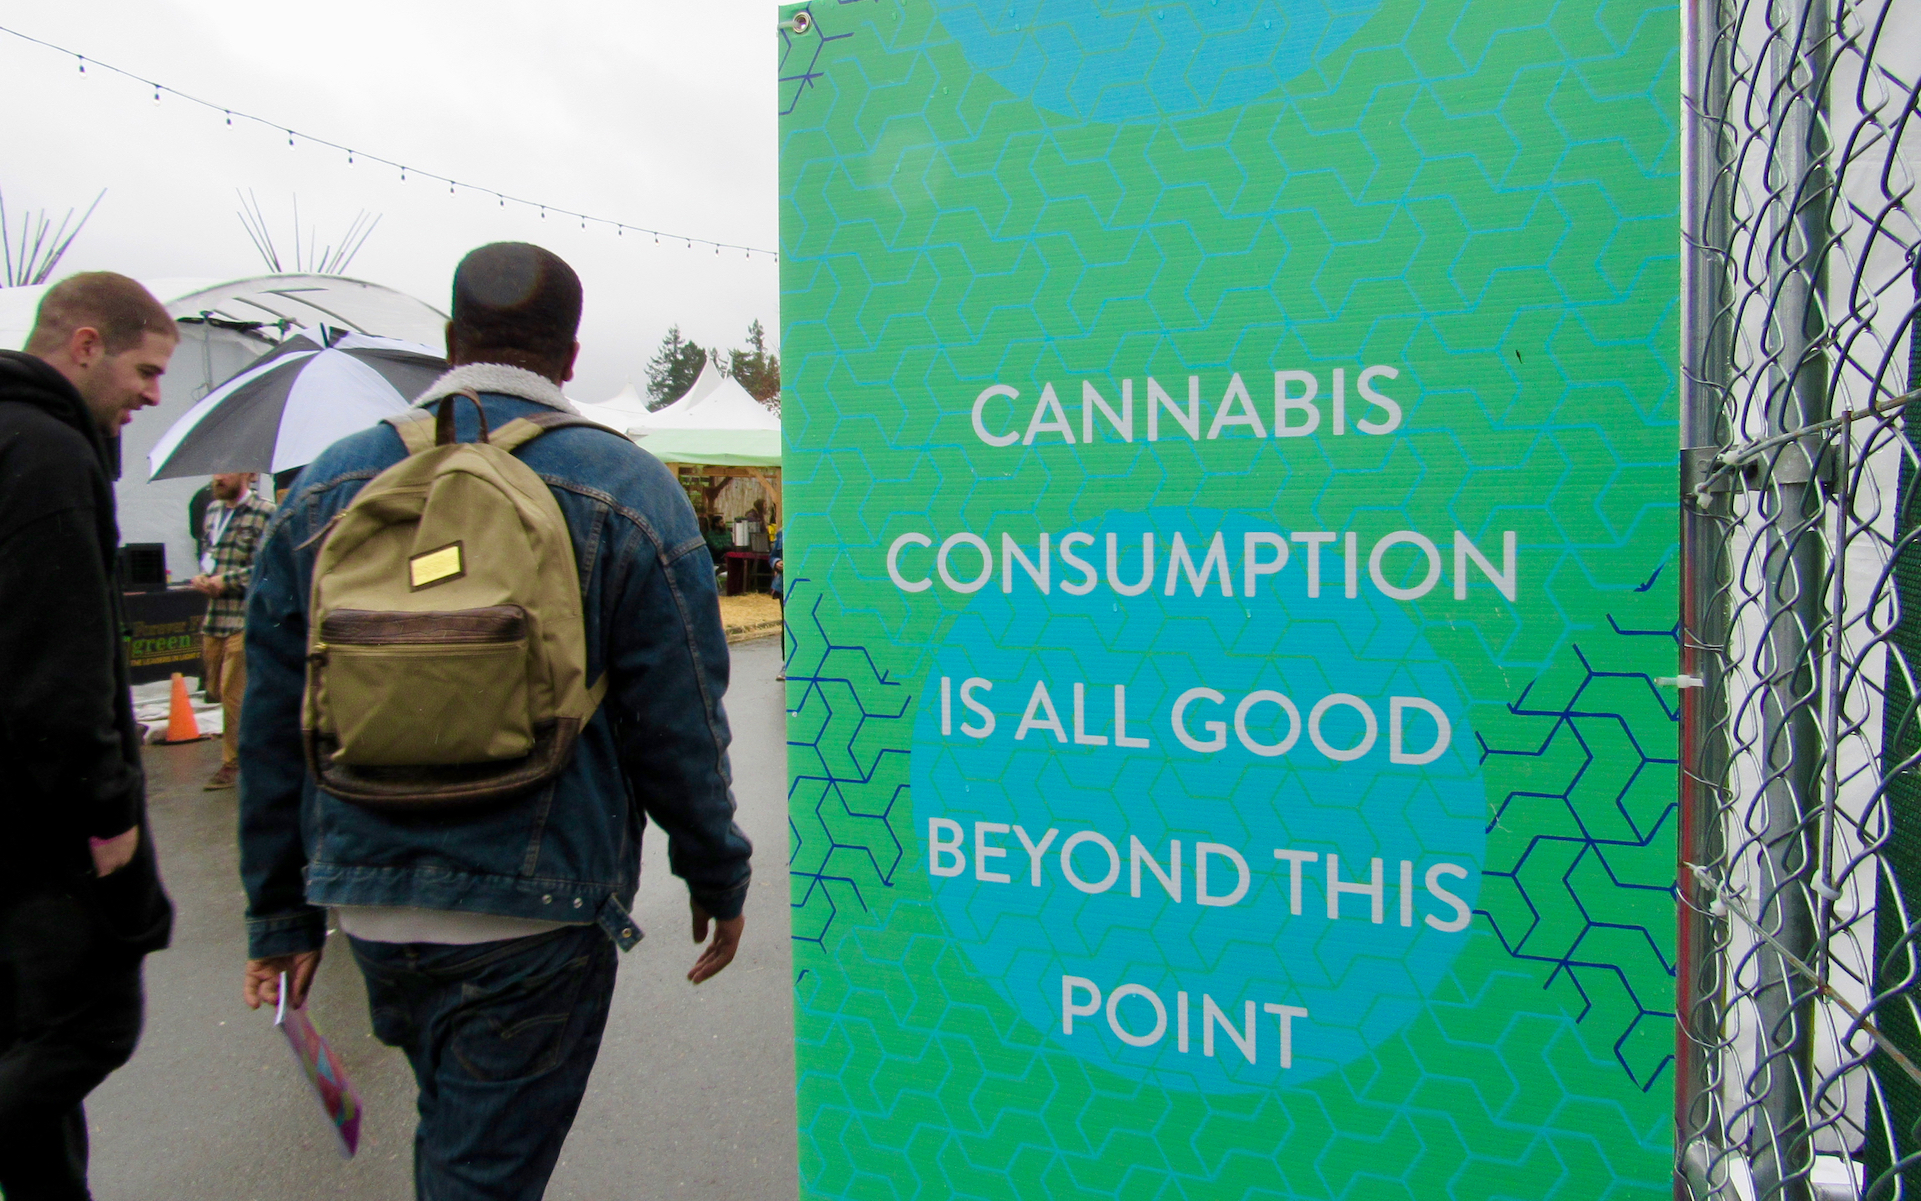 The Emerald Cup featured the world's largest on-site consumption area and farmer's market. (David Downs/Leafly)